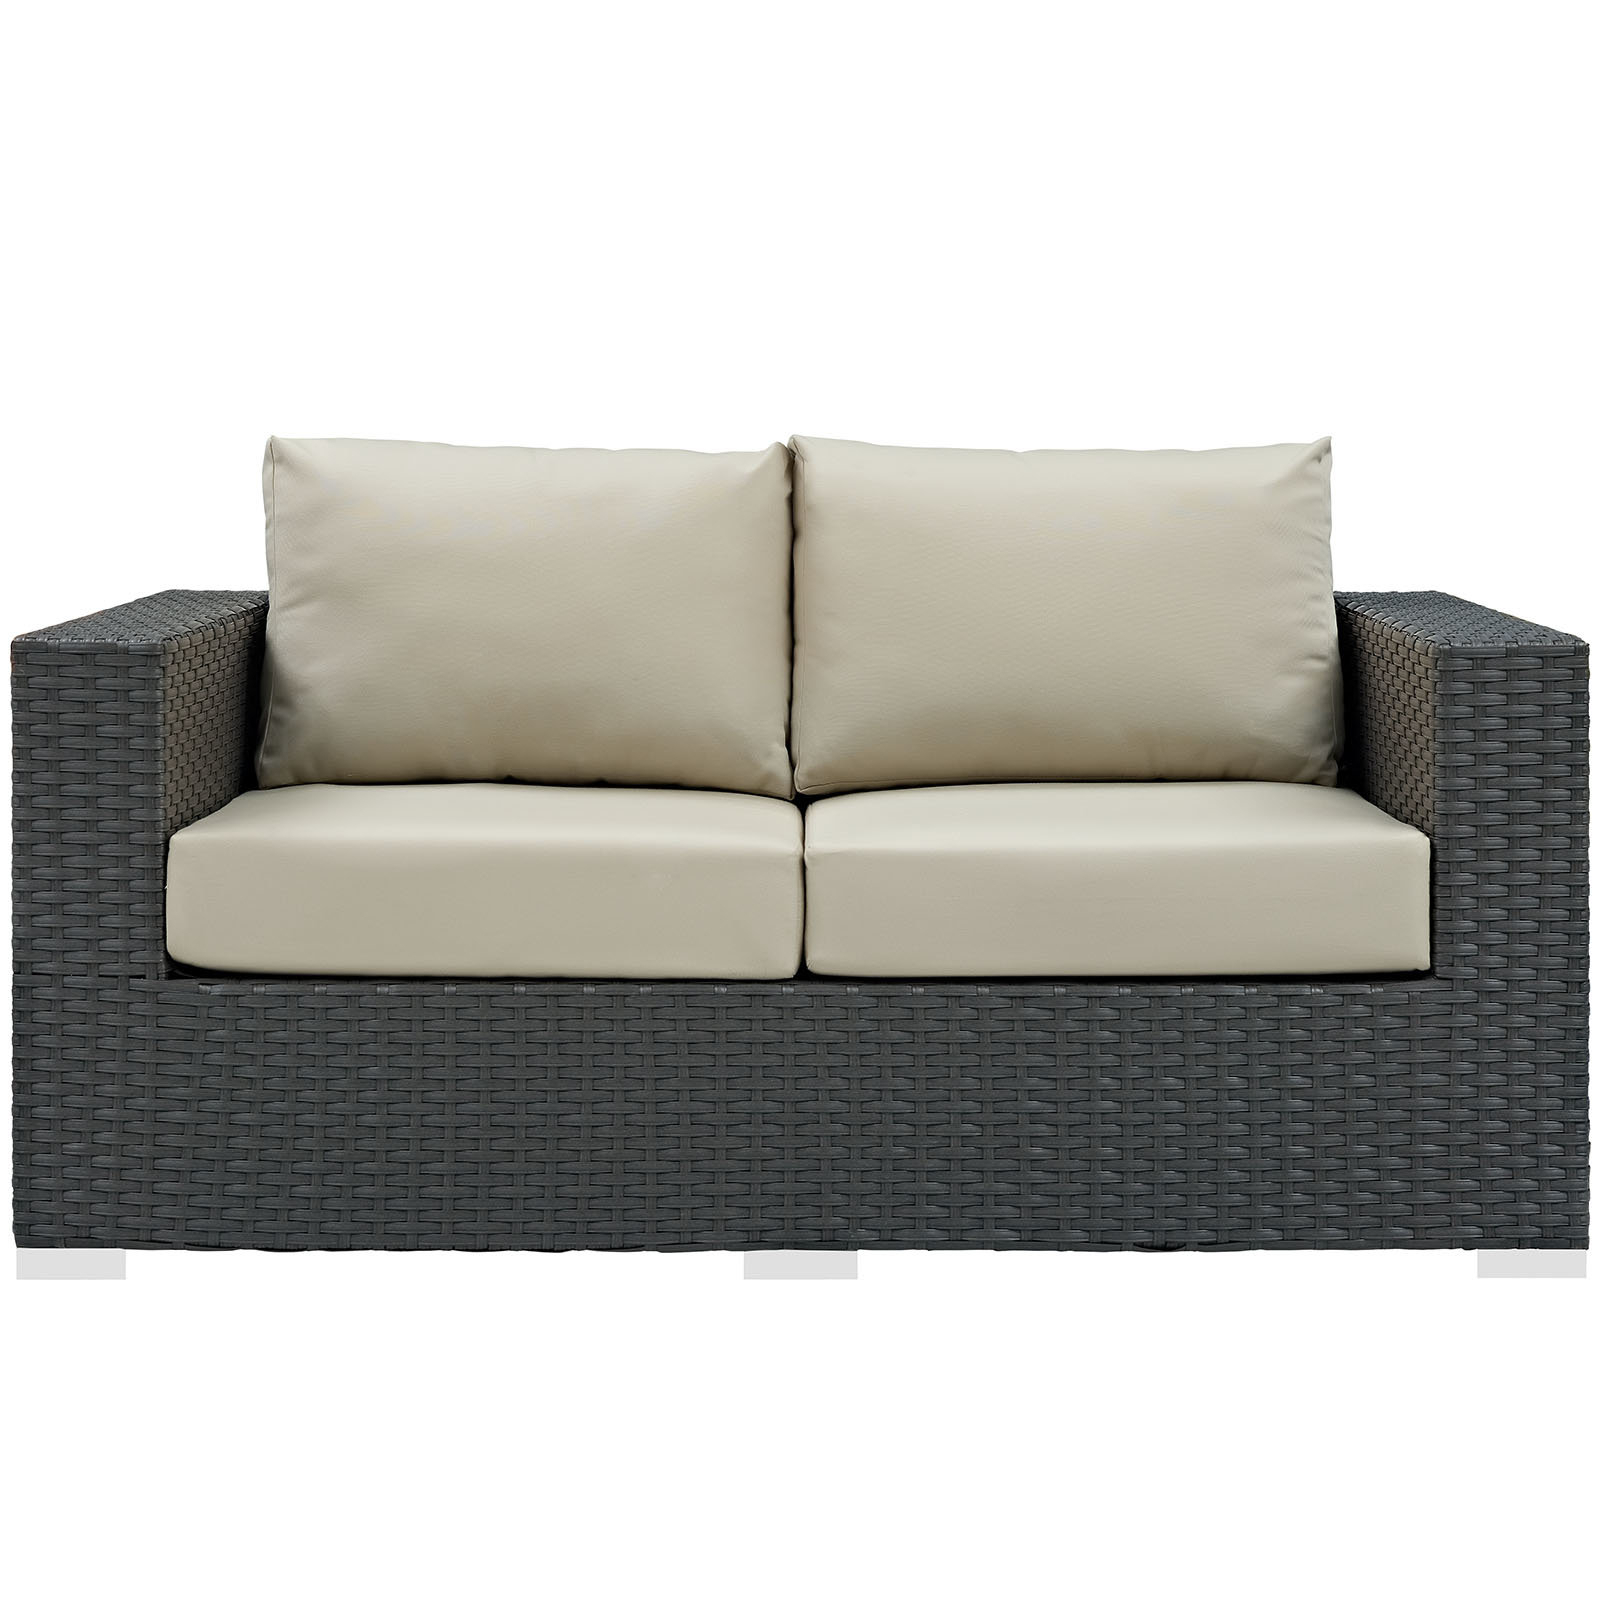 Well Liked Tripp Loveseat With Cushions For Tripp Sofa With Cushions (View 10 of 20)